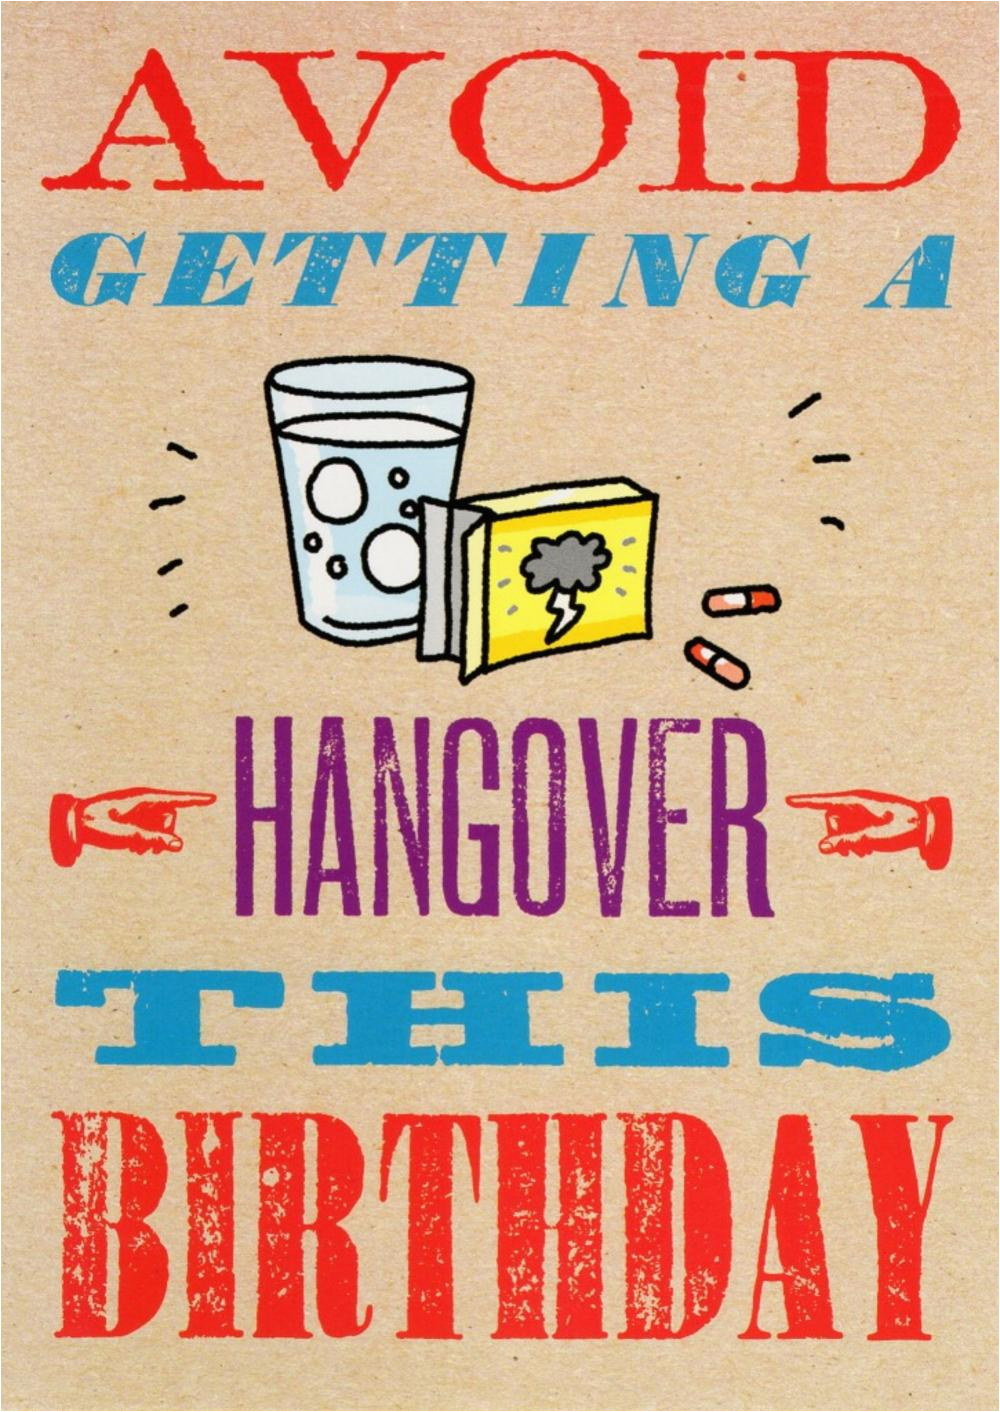 kcsnhpp002 avoid getting a hangover funny birthday card hot potato range greeting cards